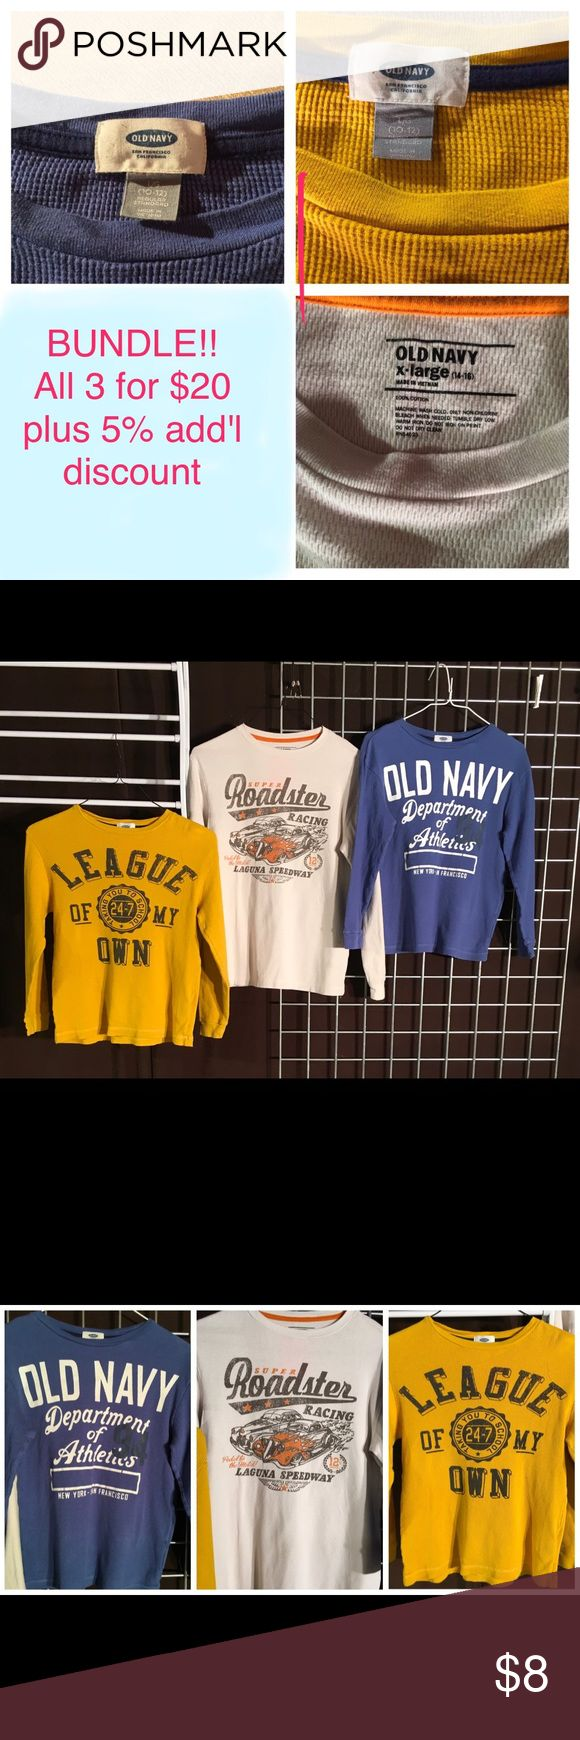 Old Navy boys shirts. $8 ea /bundle all 3 for $20 100% cotton Old Navy quality boys thermal shirts. Gently used, no rips, fraying or stains.    Perfect addition to any casual wardrobe. Use to layer in cold weather or wear alone any season. Blue and gold shirts boys size (L) 10-12.         White shirt size (XL) 14-16 Old Navy Shirts & Tops Tees - Long Sleeve